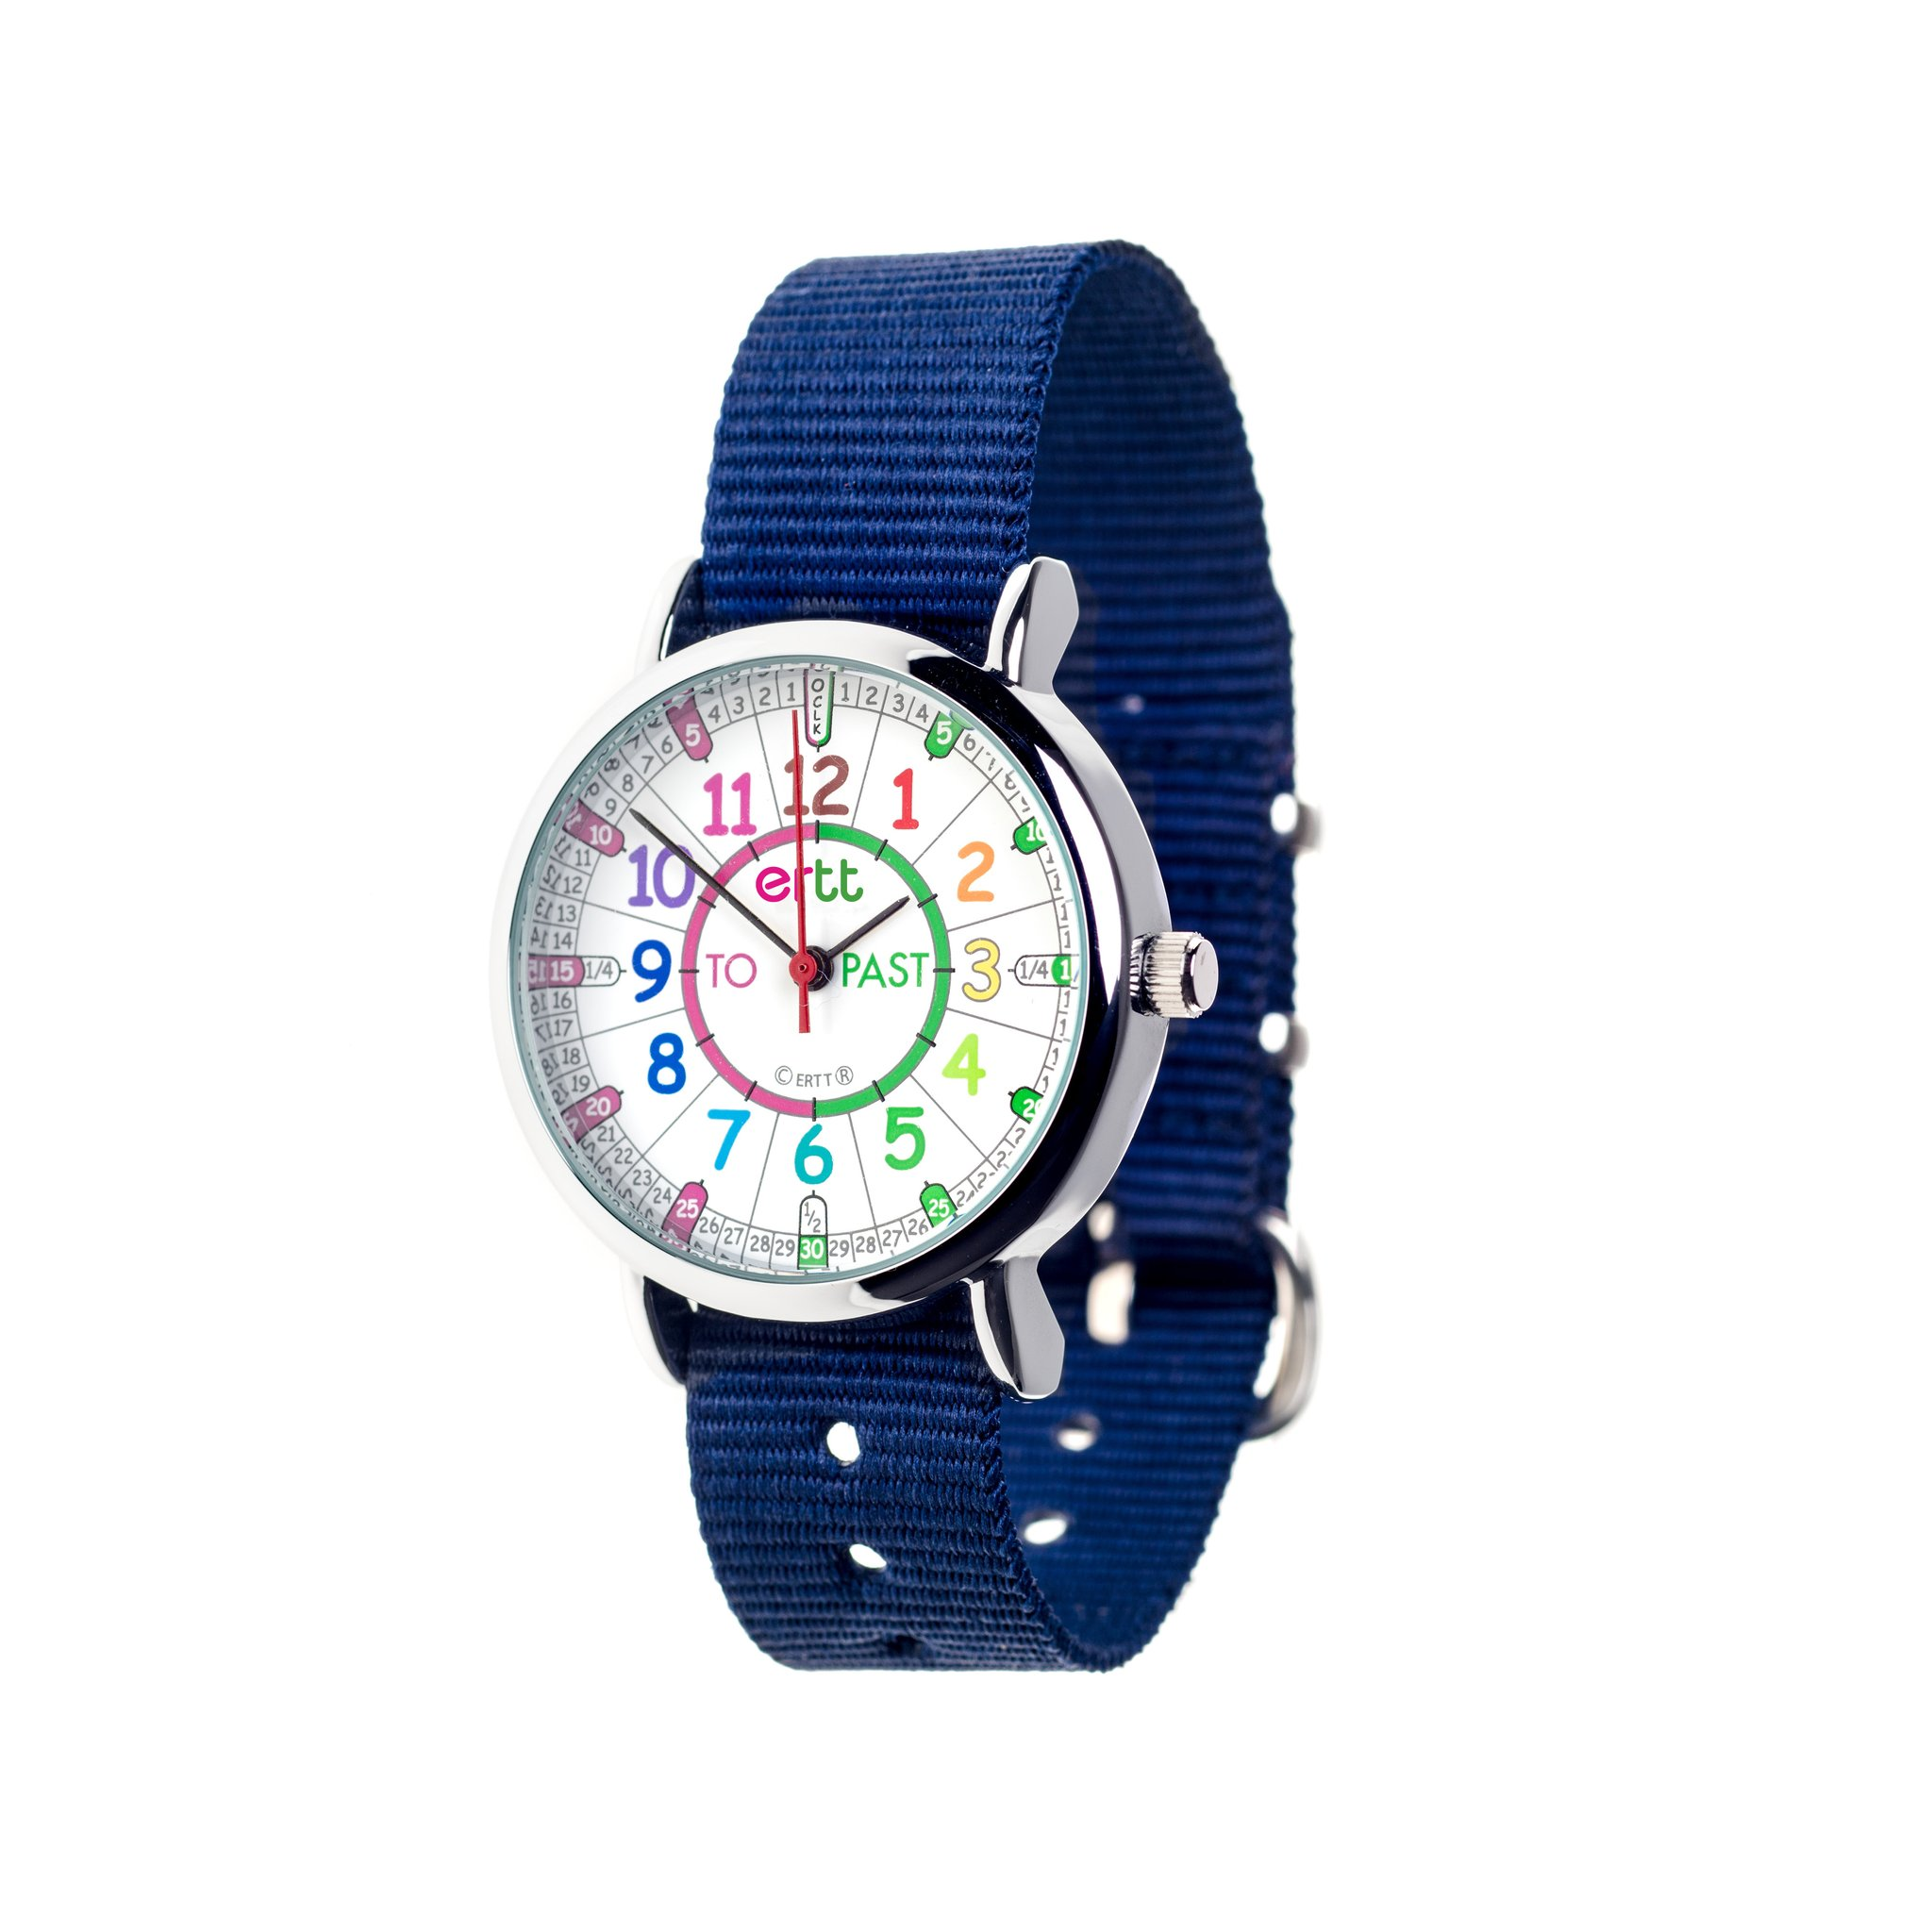 EasyRead Waterproof Time Teacher Past/To Watch-Rainbow Navy strap